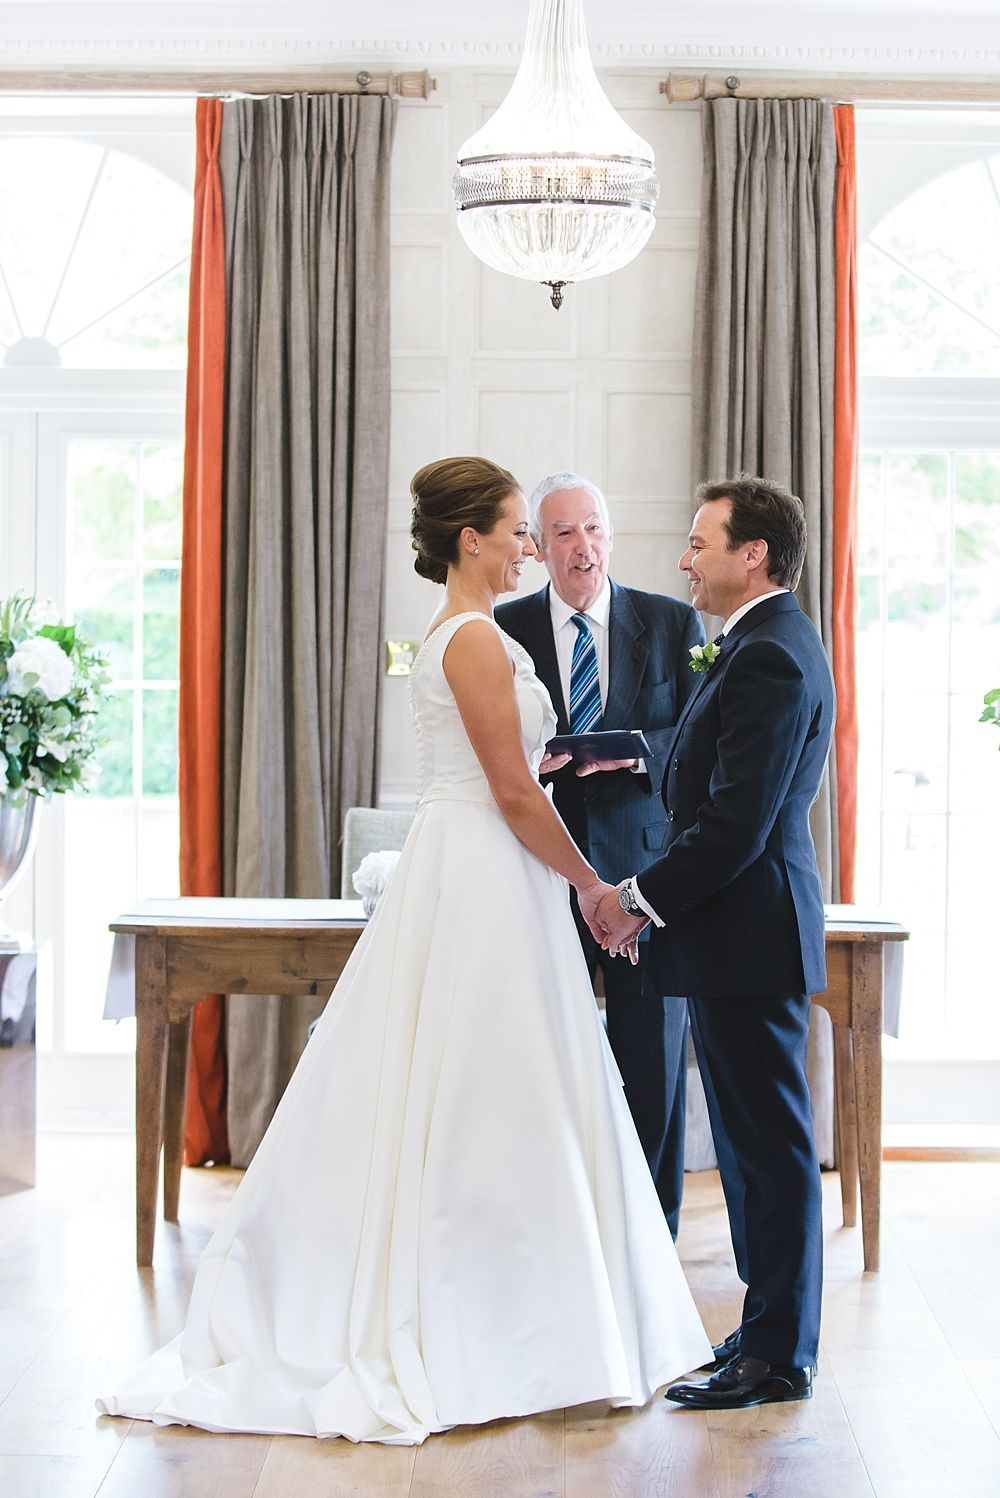 844fea5a21b4 ... of Weddings by Nicola and Glen - A luxury wedding at Slaughter Manor in  the cotswolds cheltenham with designer bespoke alan hannah gown